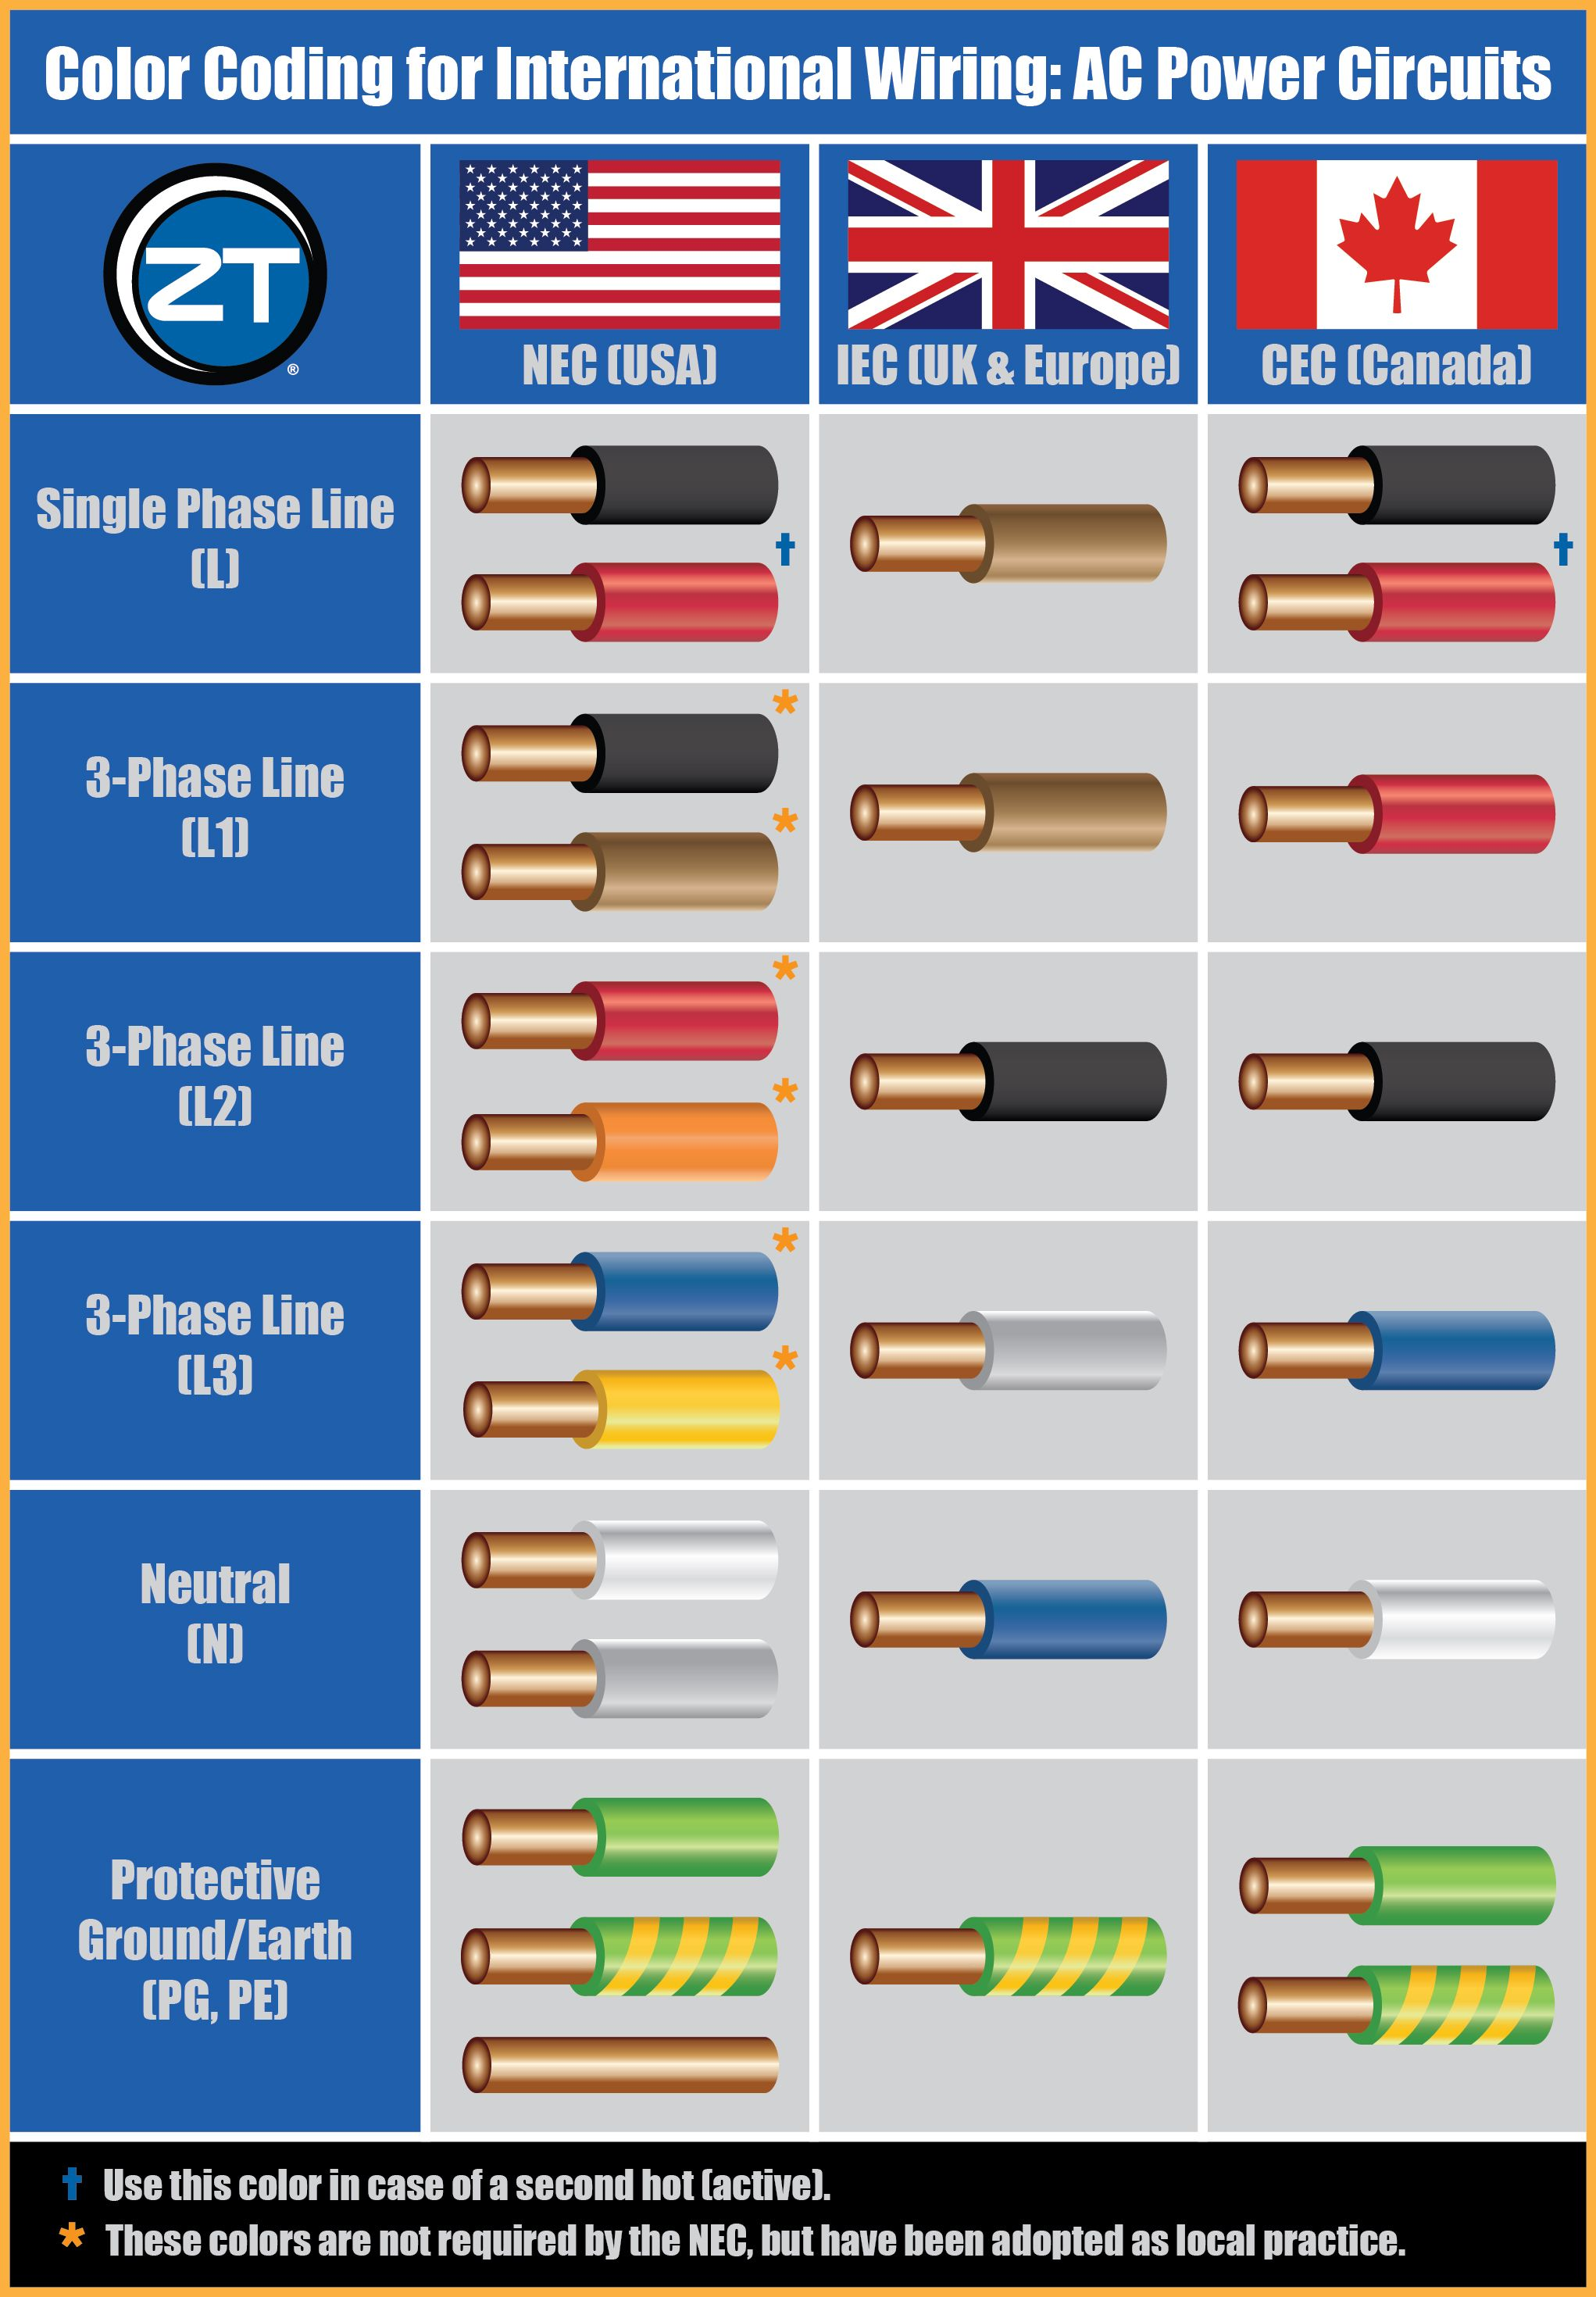 medium resolution of ac wiring color code wiring diagram expert wire color coding canada guide to color coding for